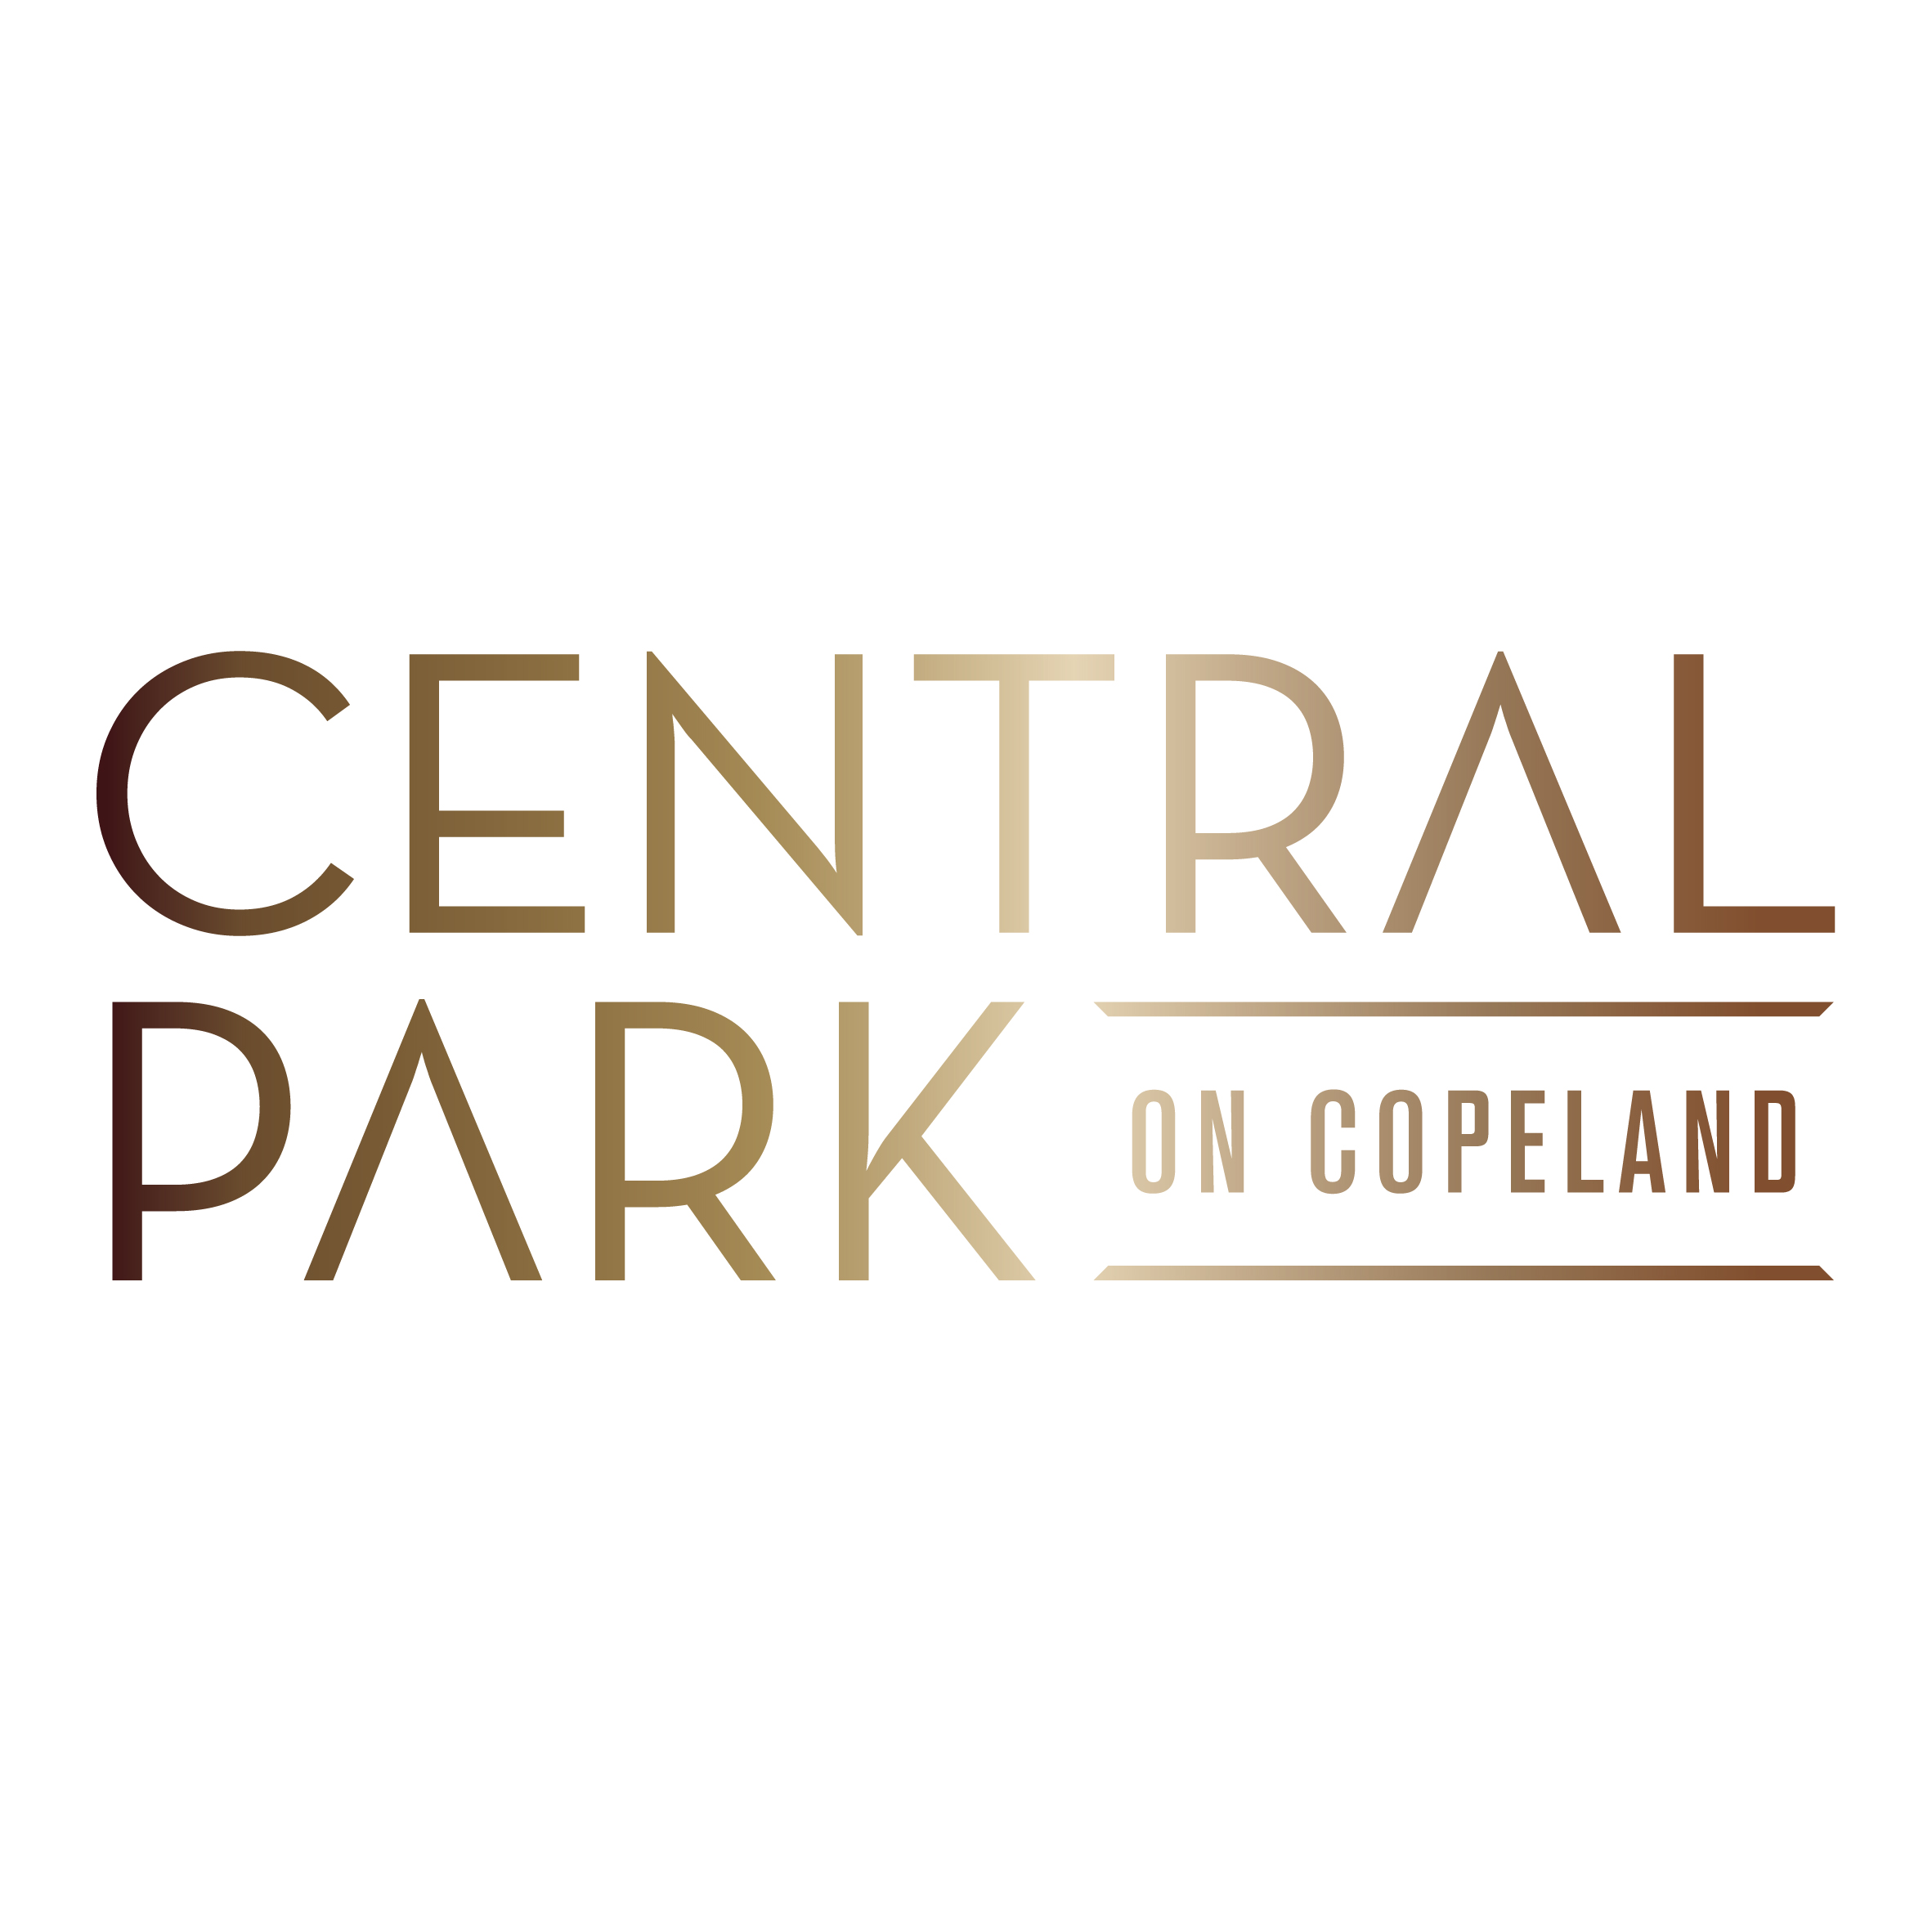 Central Park on Copeland_Bronze.jpg